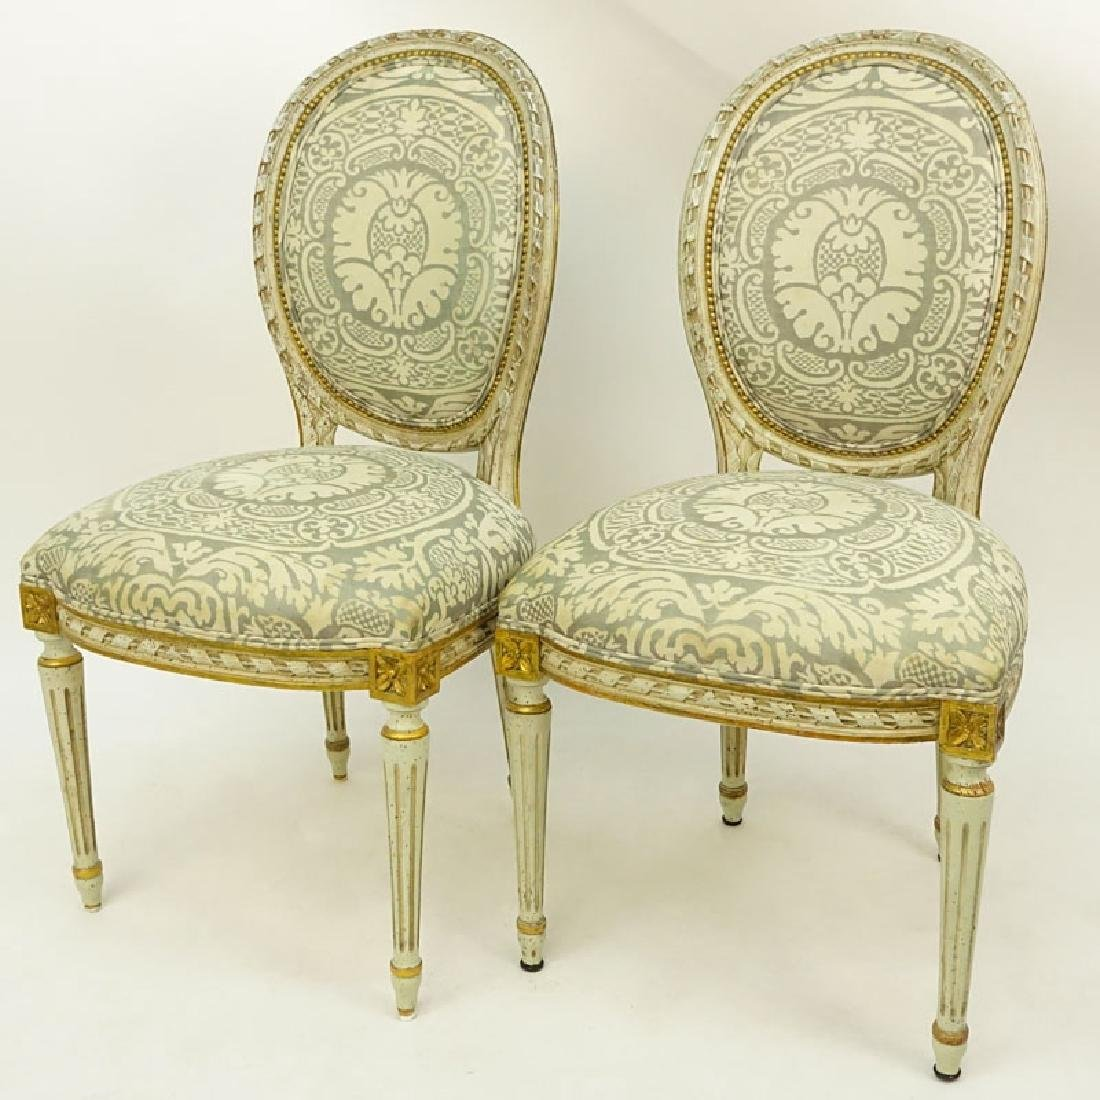 Pair of Louis XVI Style Carved Balloon Back Upholstered